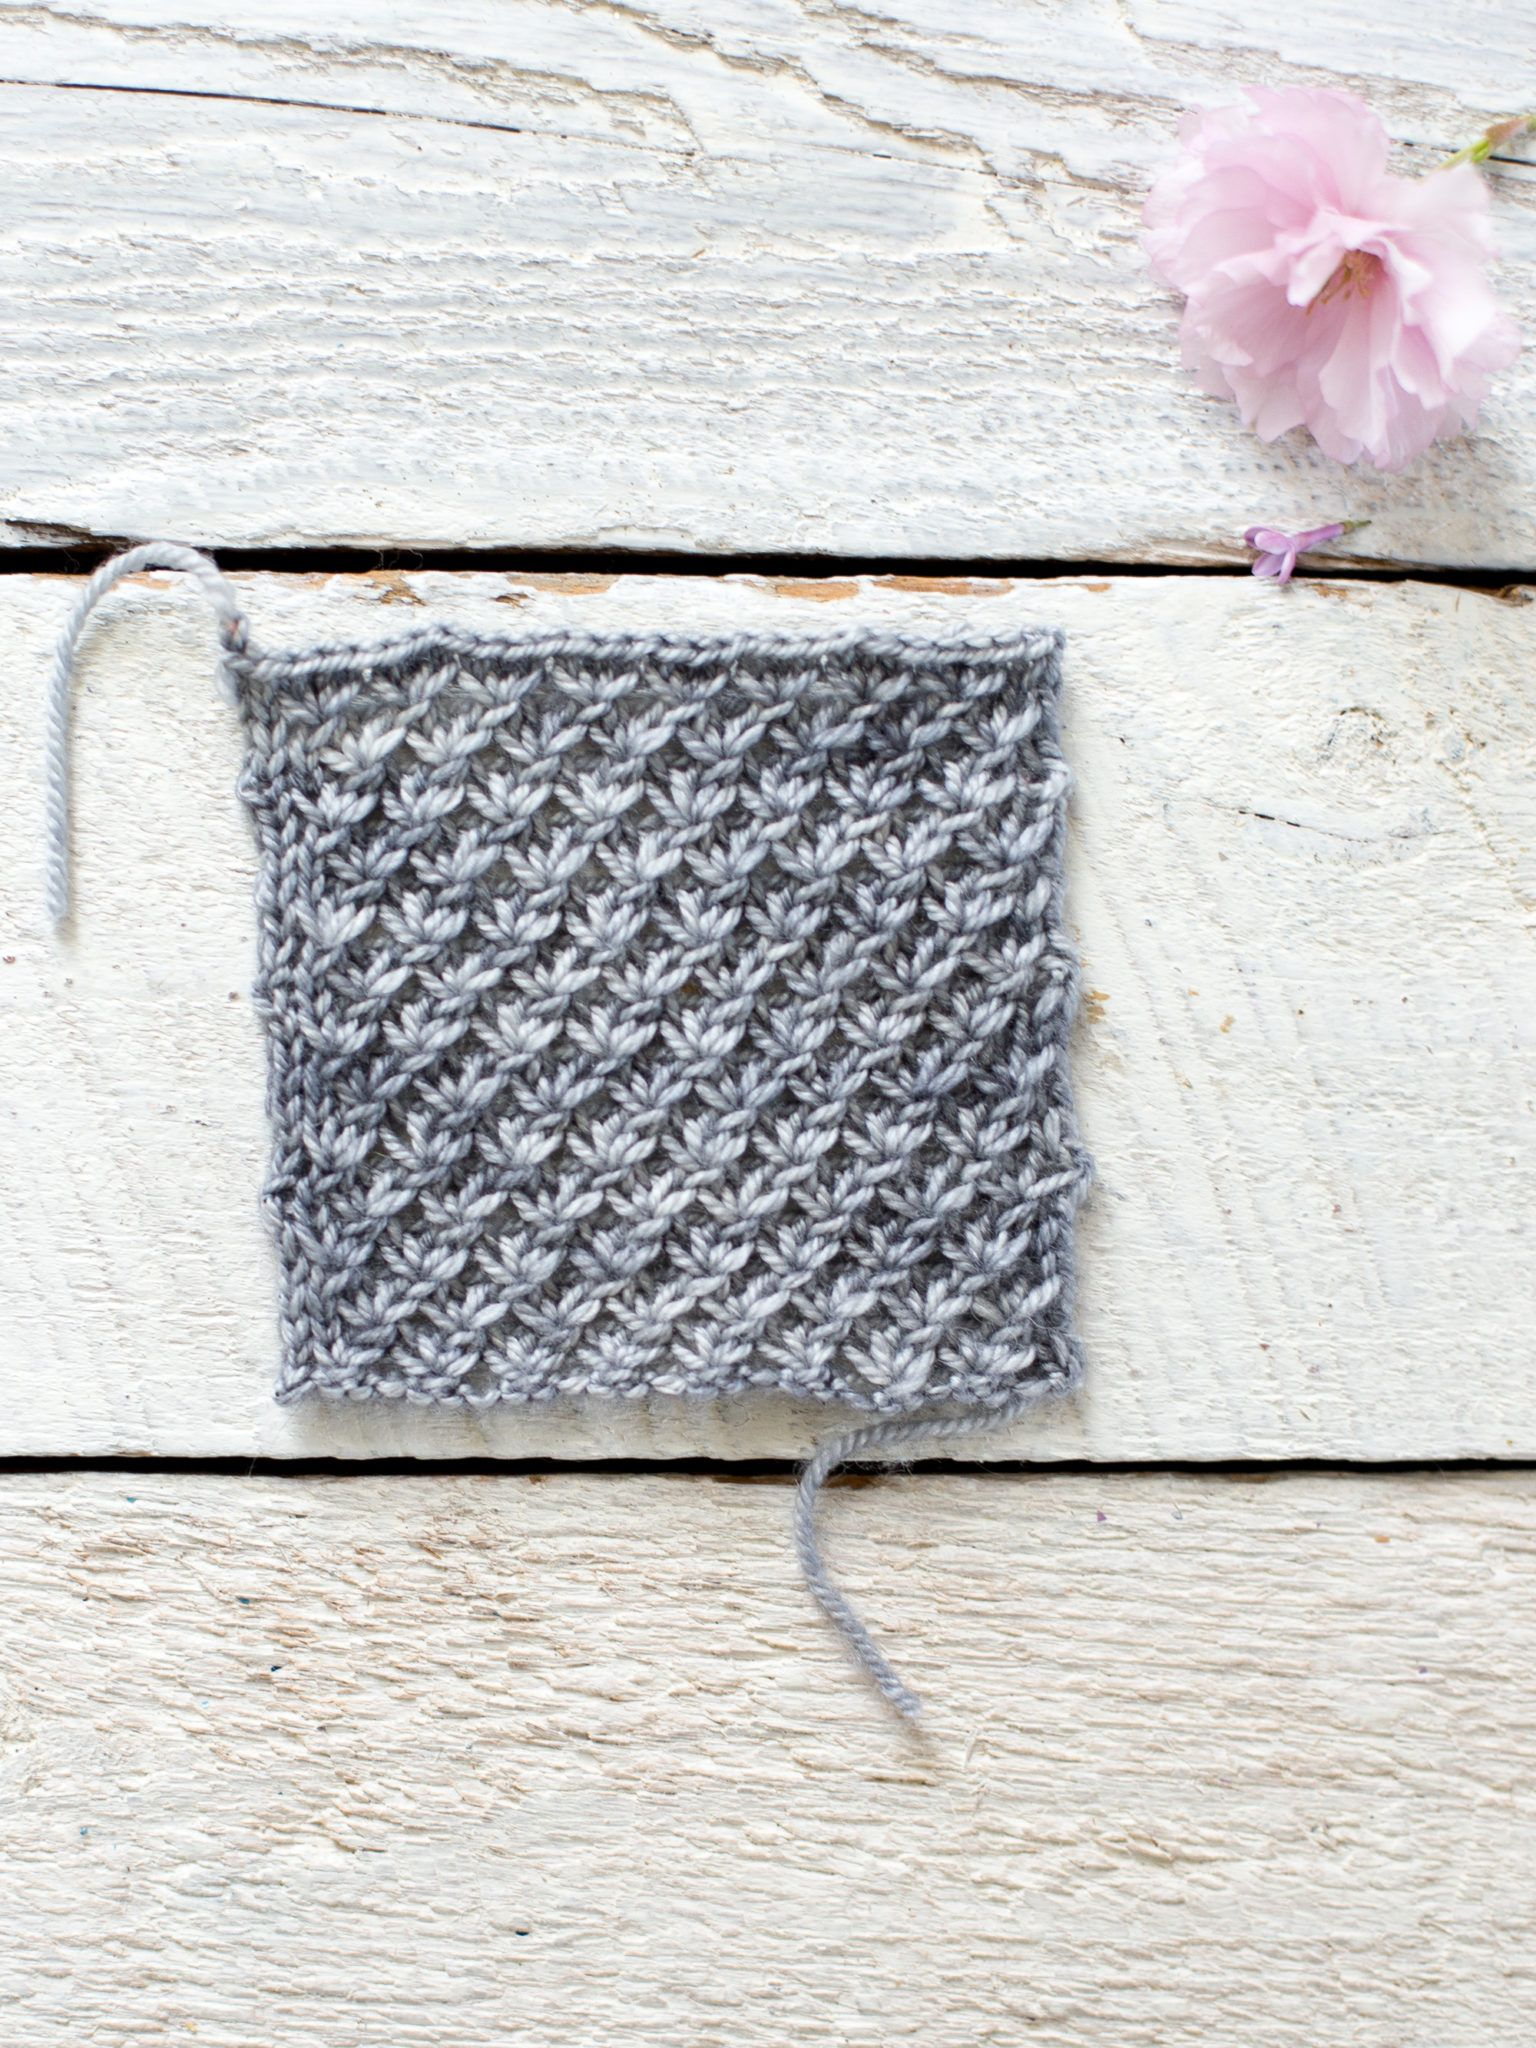 How To Make An Easy Lace Knit Shawl Pattern | Pinterest | Dos agujas ...